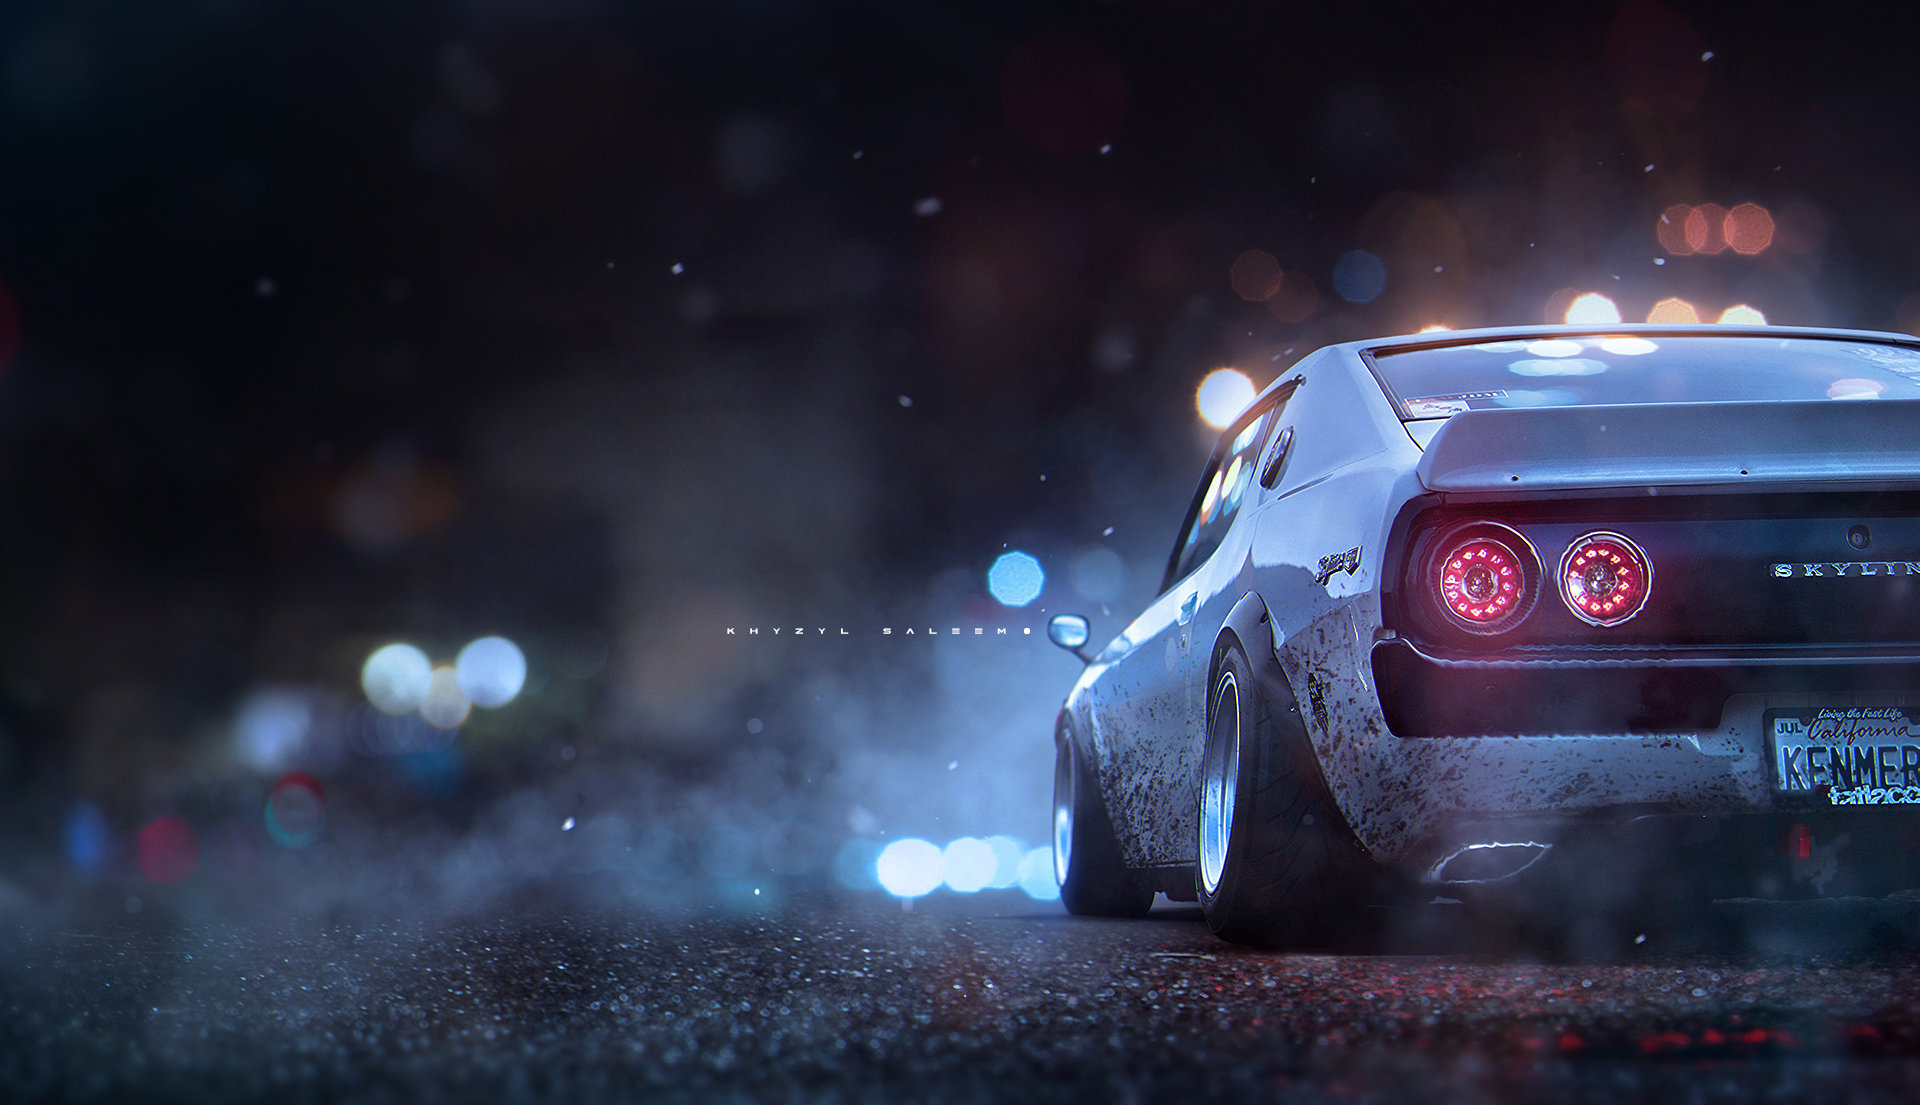 Artstation Kenmeri Wallpaper Khyzyl Saleem